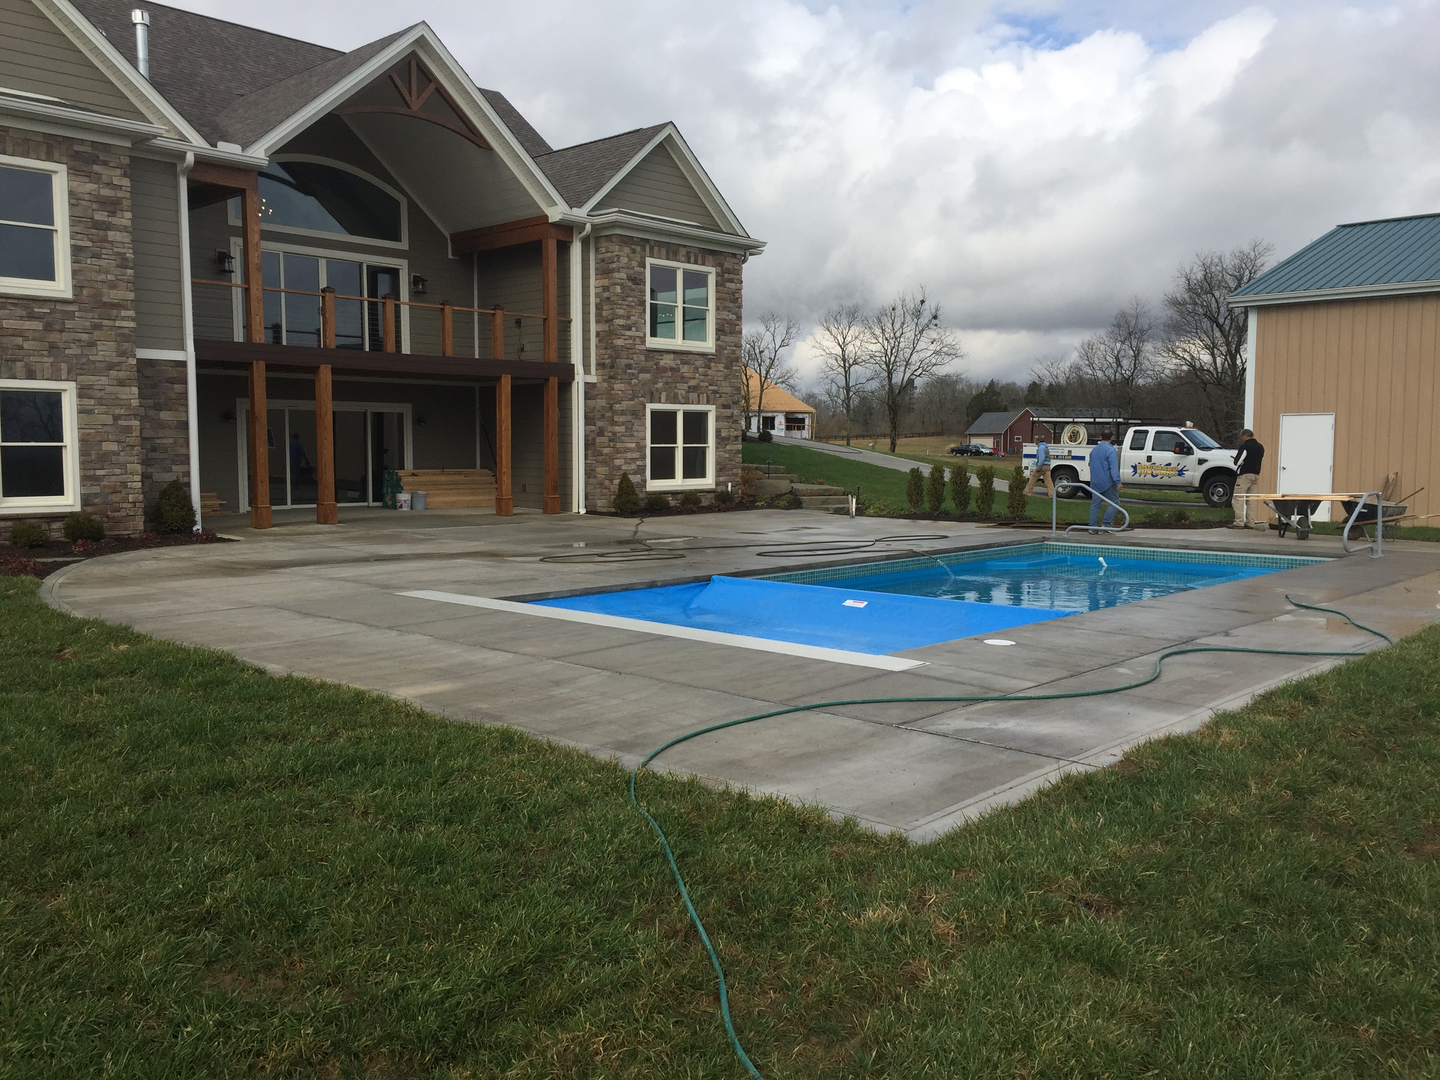 Backyard Fun Pools Inc Coupons Near Me In Nicholasville